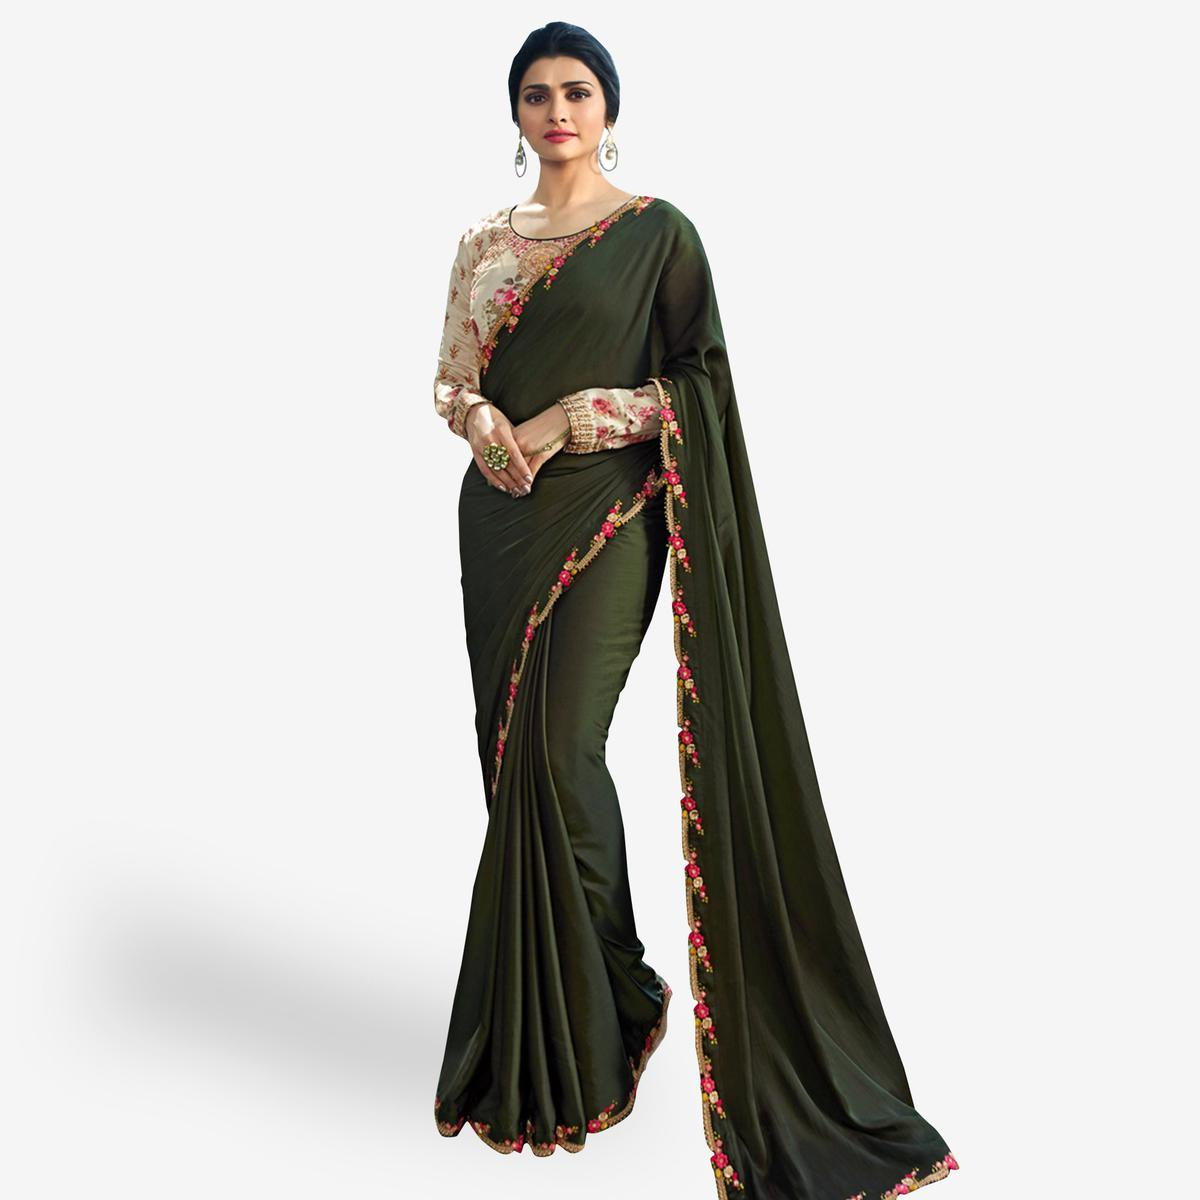 626b3a6198 Buy Marvellous Dark Olive Green Colored Partywear Embroidered Silk Saree  Online India, Best Prices, Reviews - Peachmode